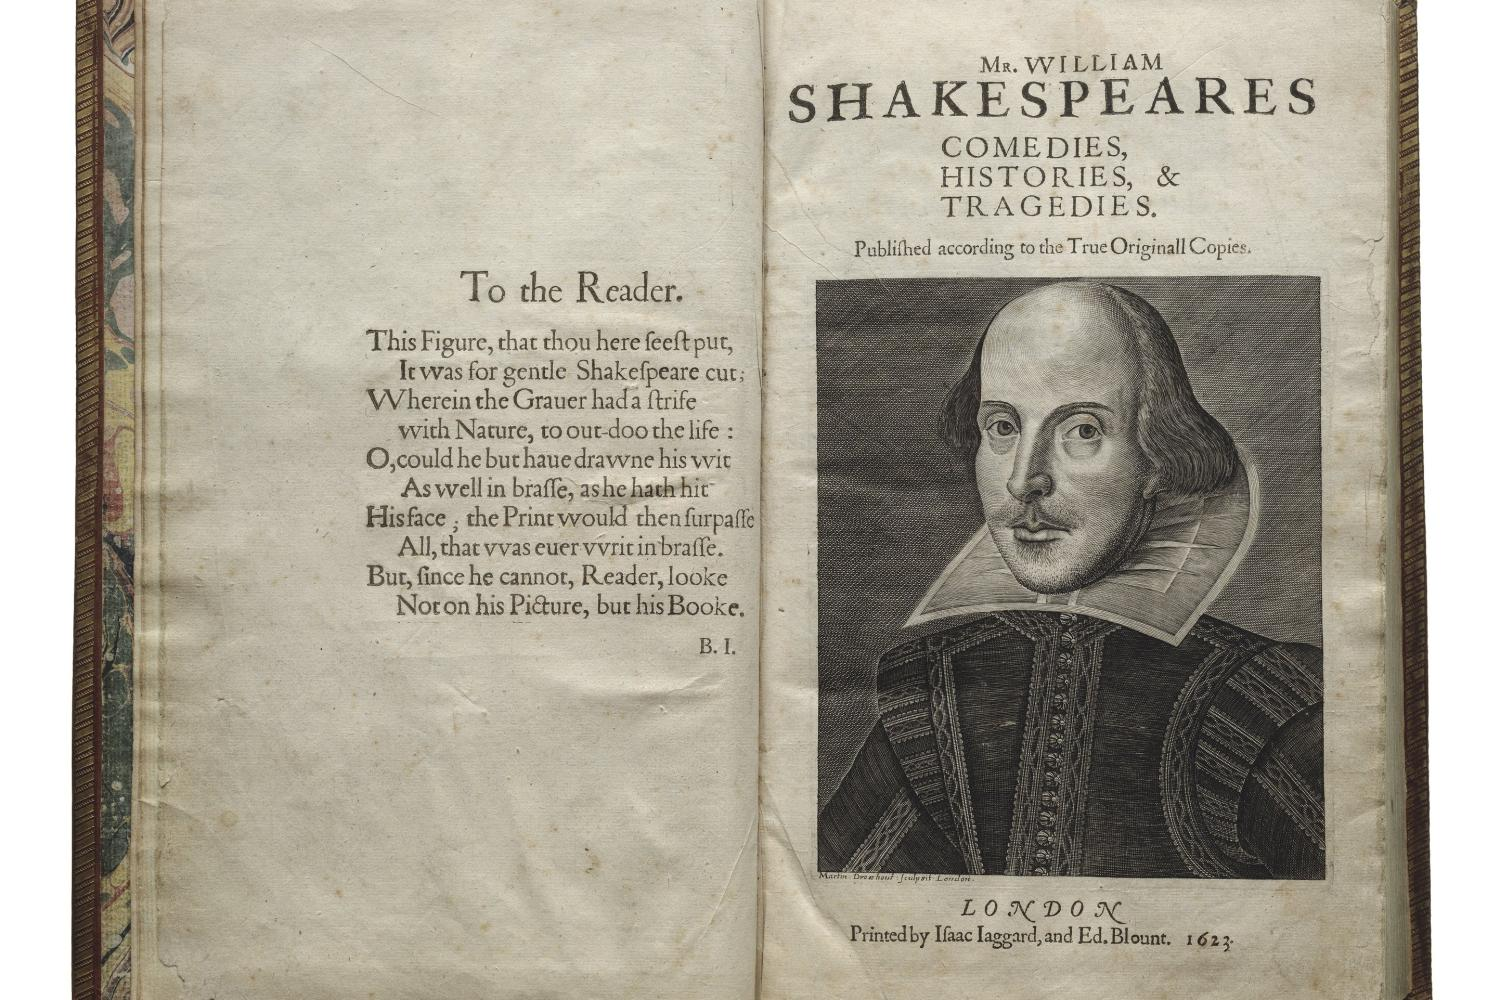 Title page of First Folio with illustration of William Shakespeare.